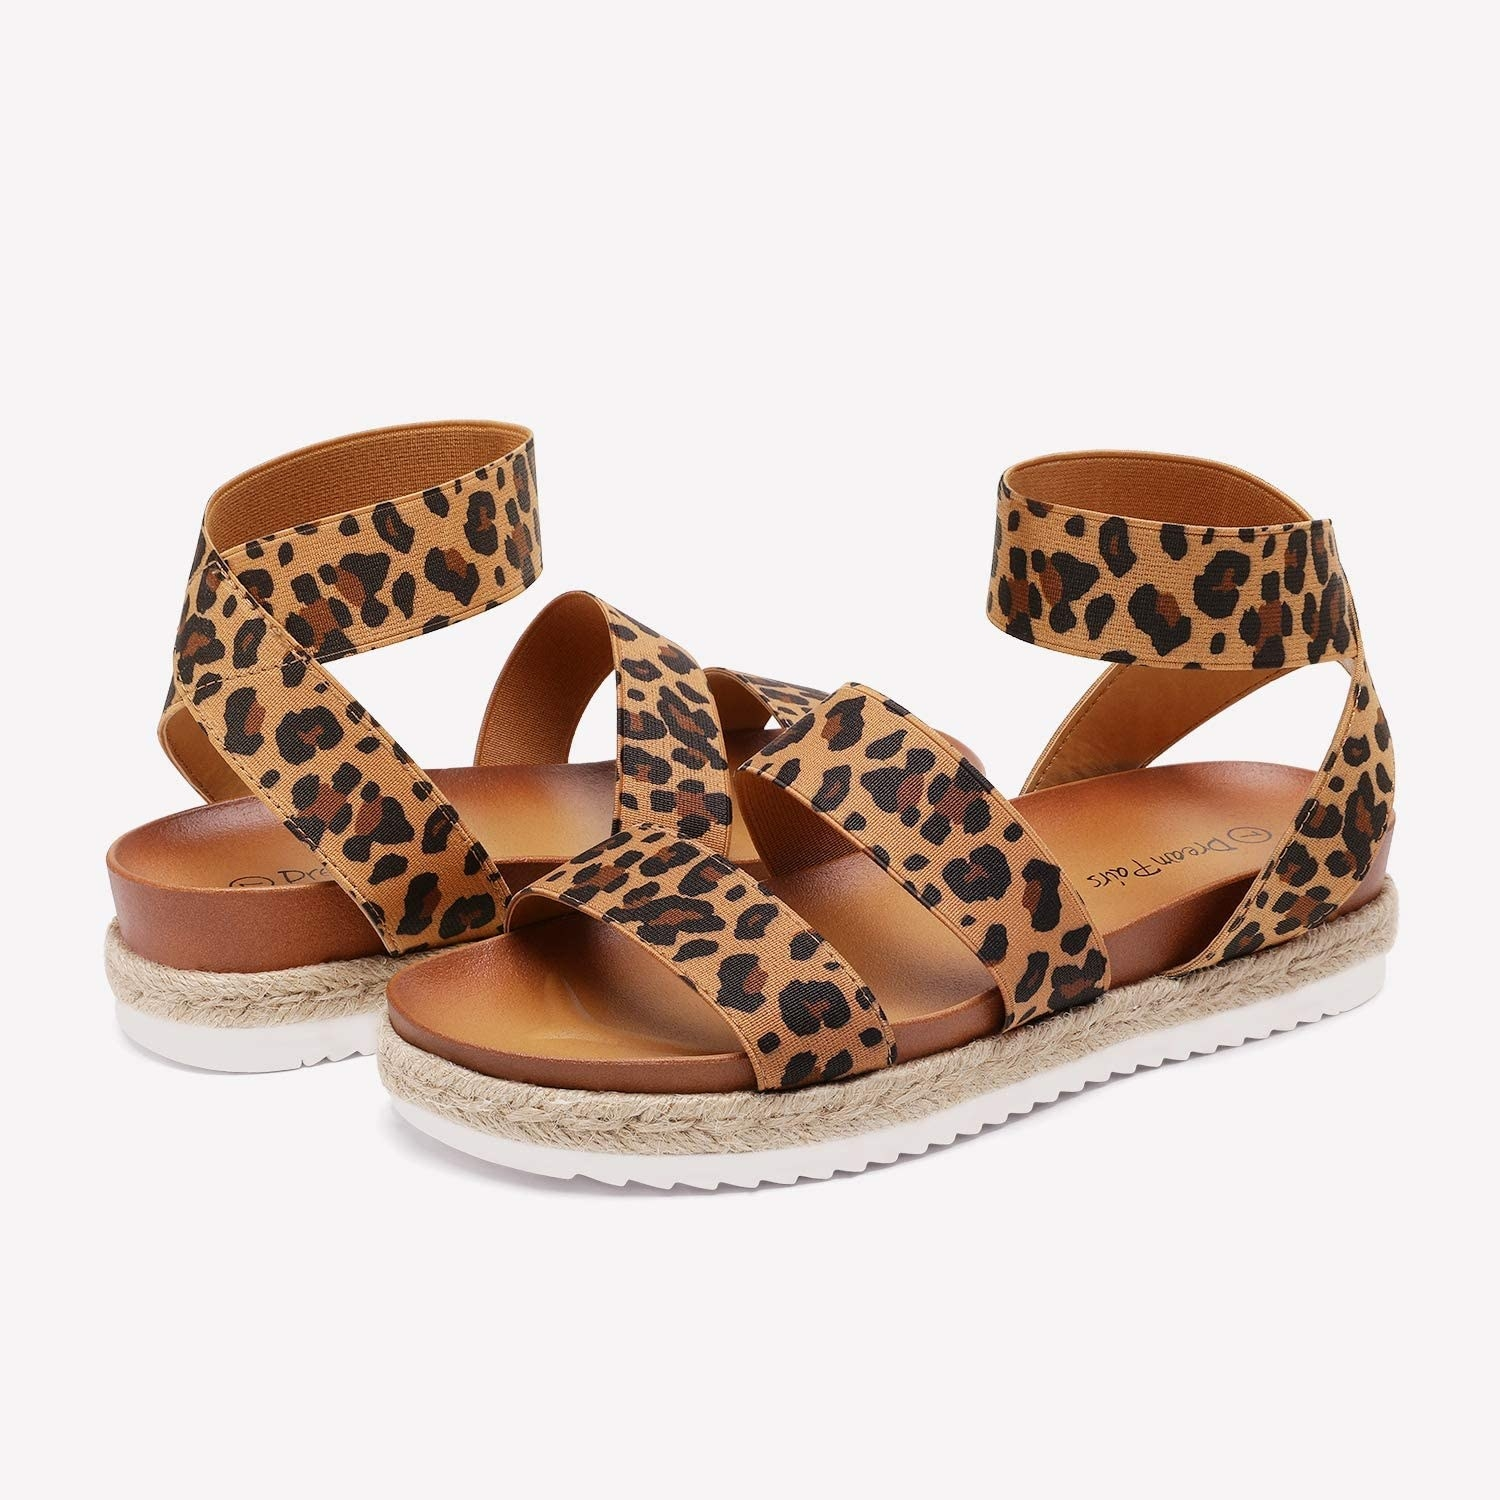 The sandals in leopard print